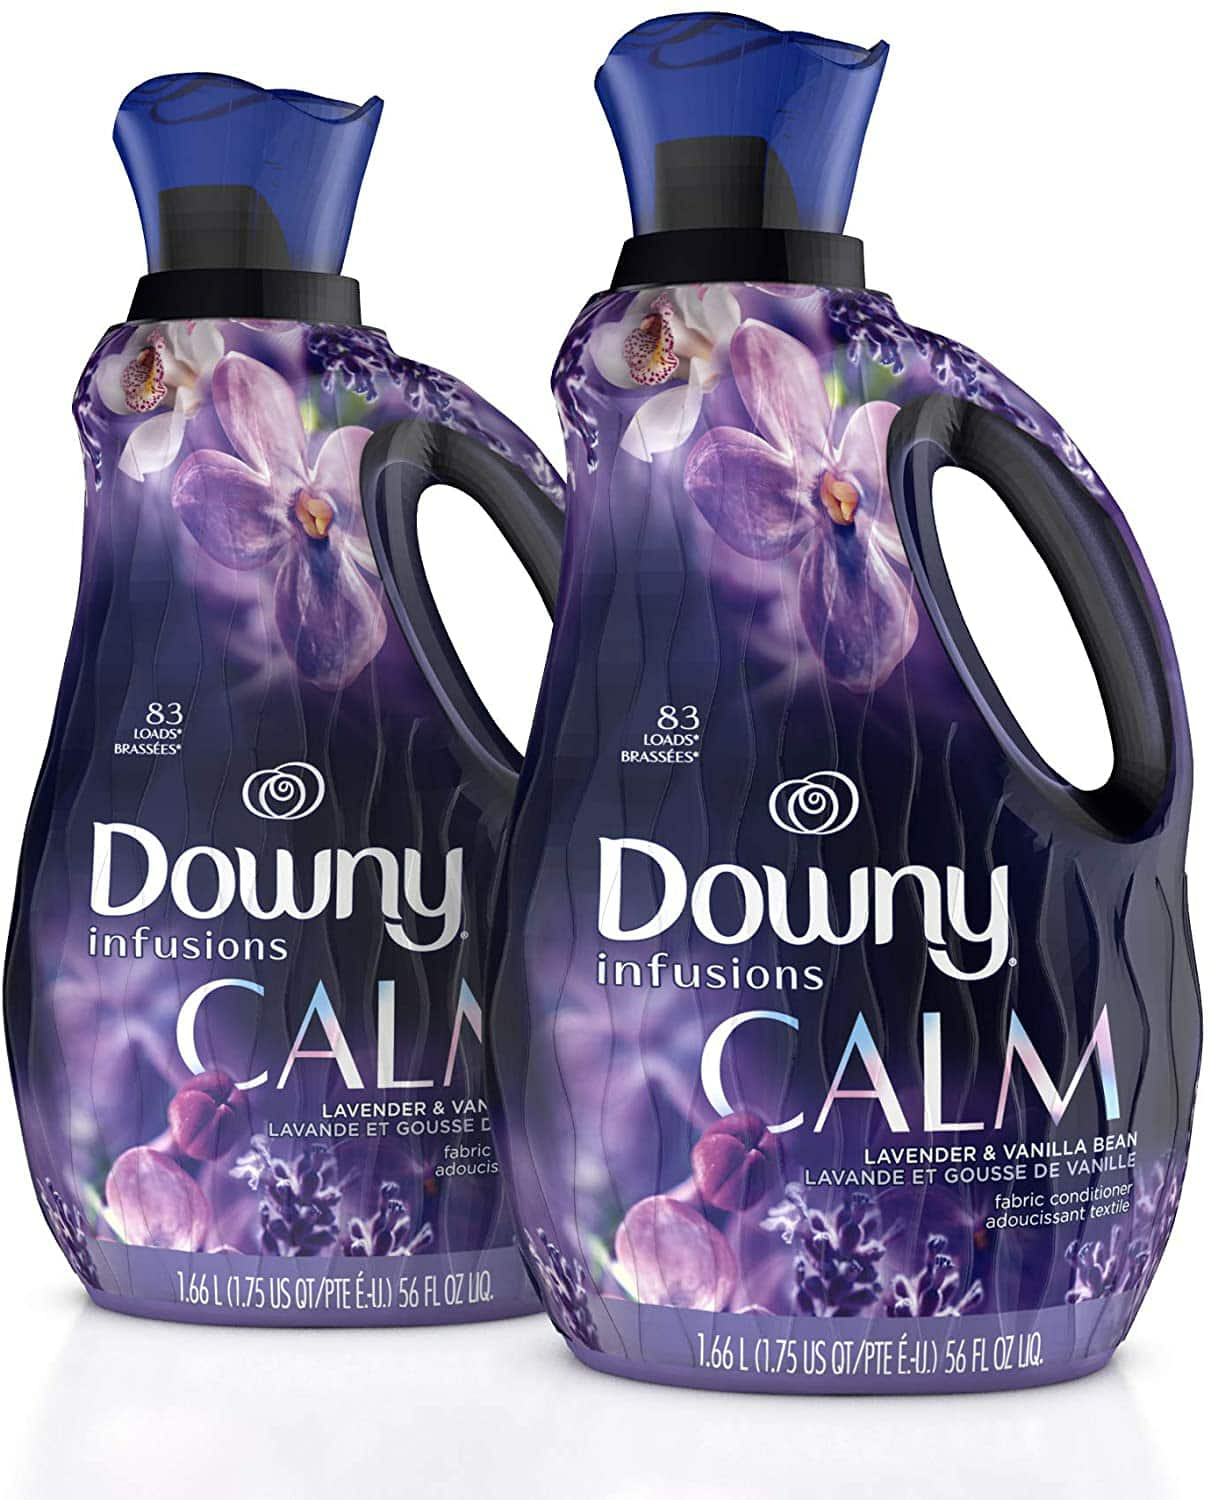 Amazon.com: $9.56 Downy Infusions Fabric Conditioner (Fabric Softener), Calm, Lavender & Vanilla Bean, 56 Oz Bottles, 166 load(Pack of 2) $9.56